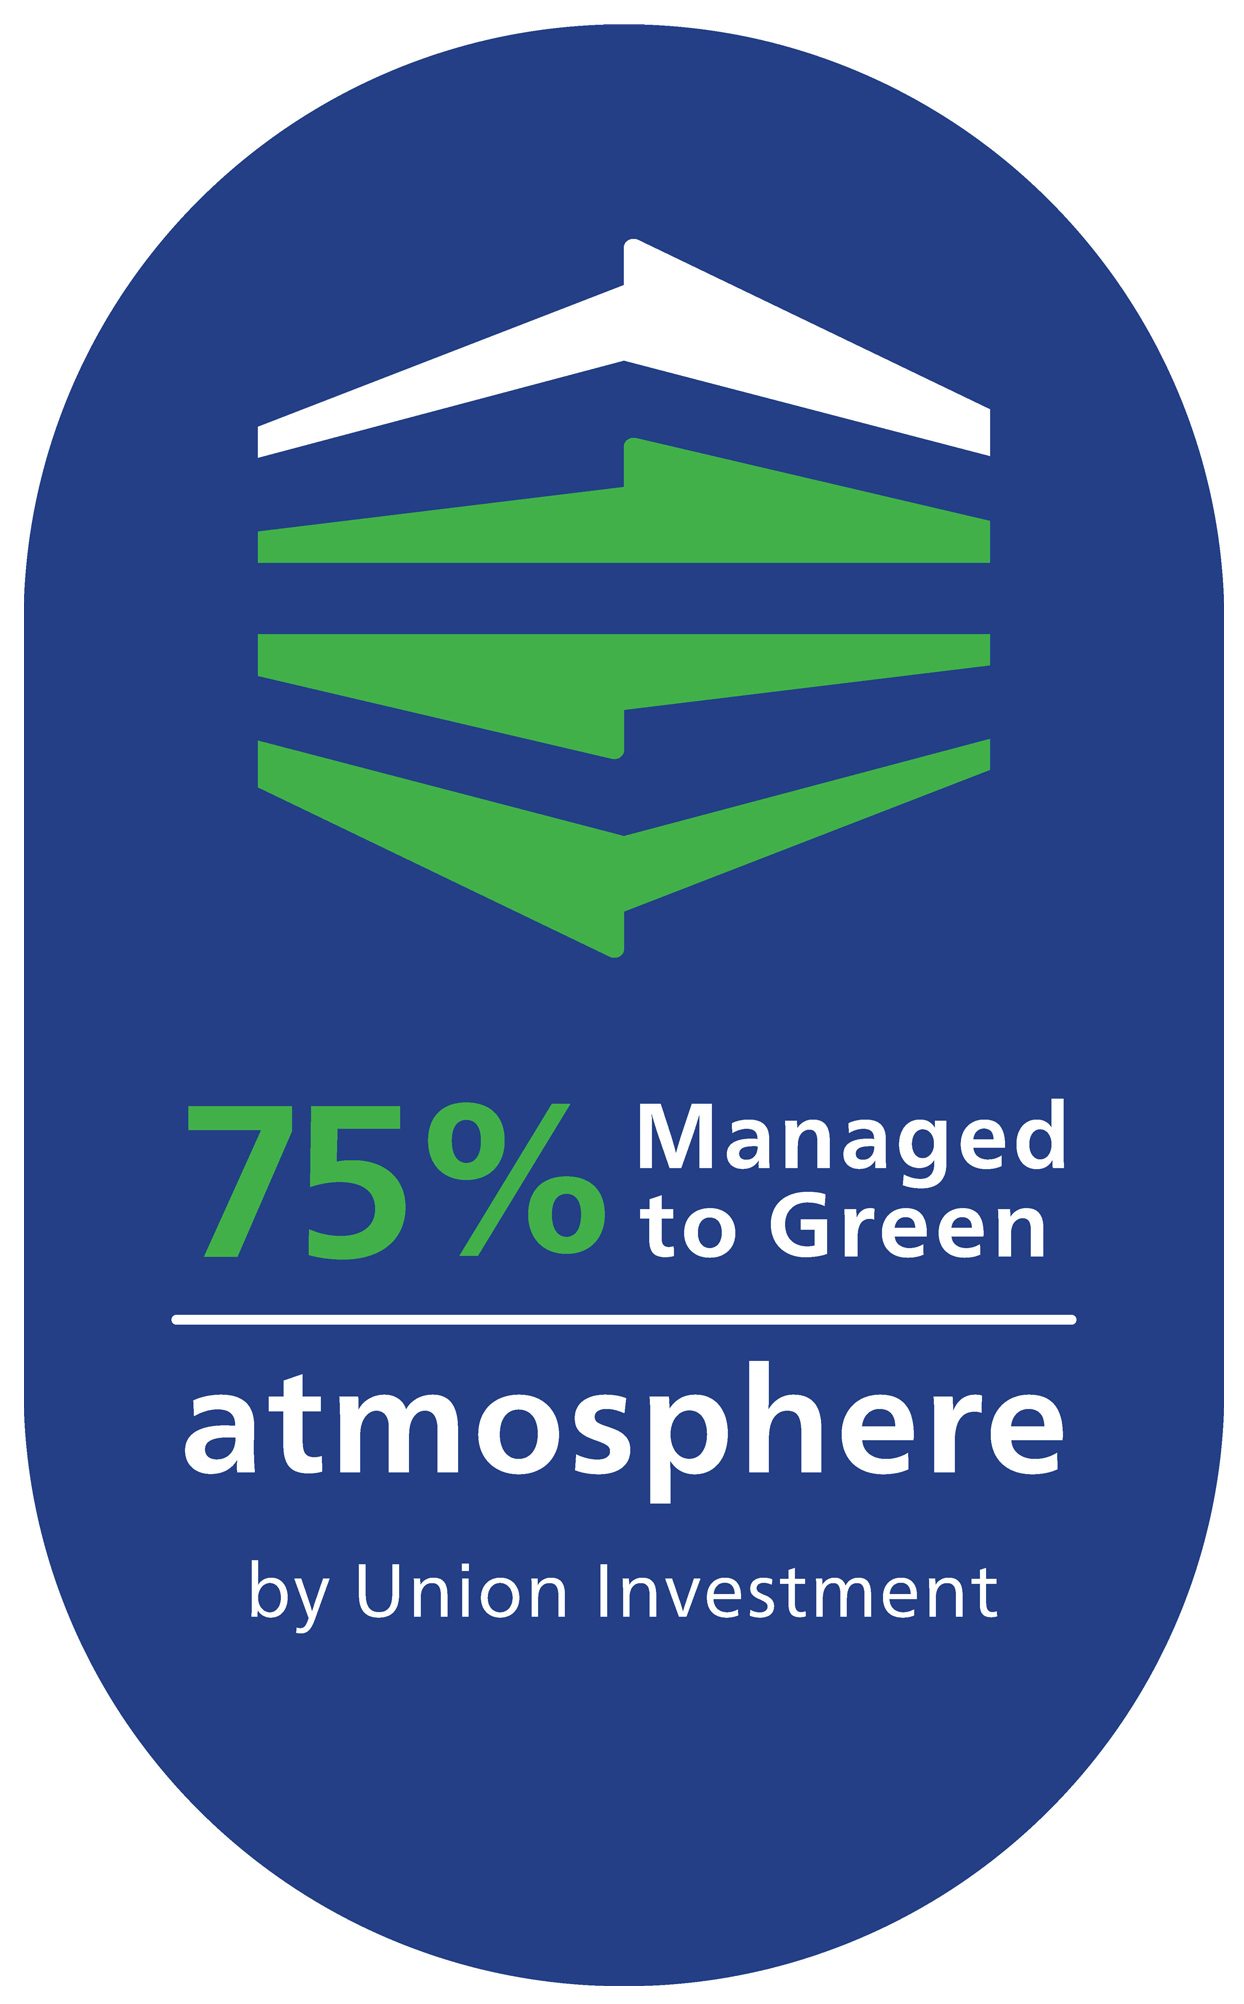 Bildmarke: 75% Managed to Green atmosphere by Union Investment